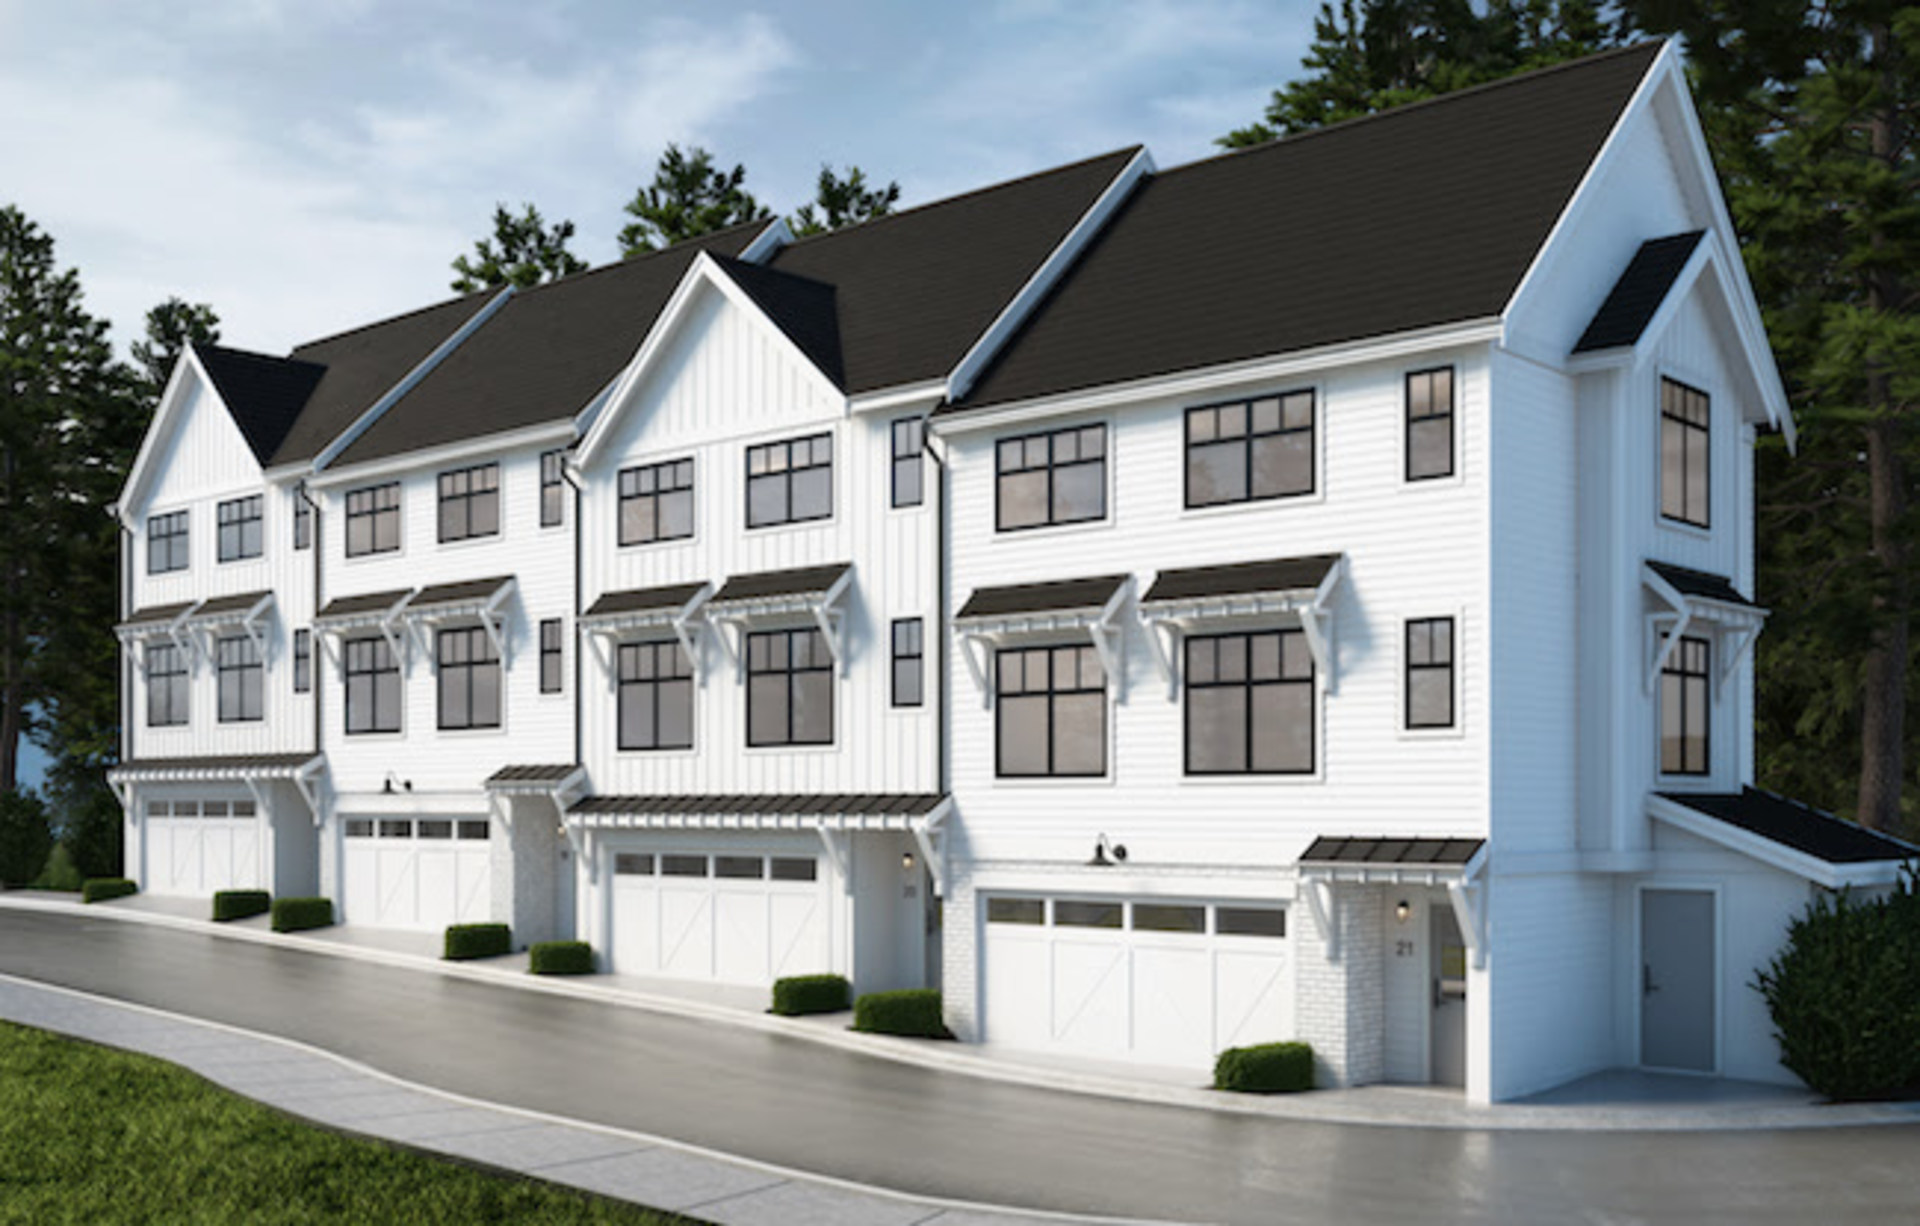 haven-townhomes-surrey at Haven (3339 148 Street, Elgin Chantrell, South Surrey White Rock)